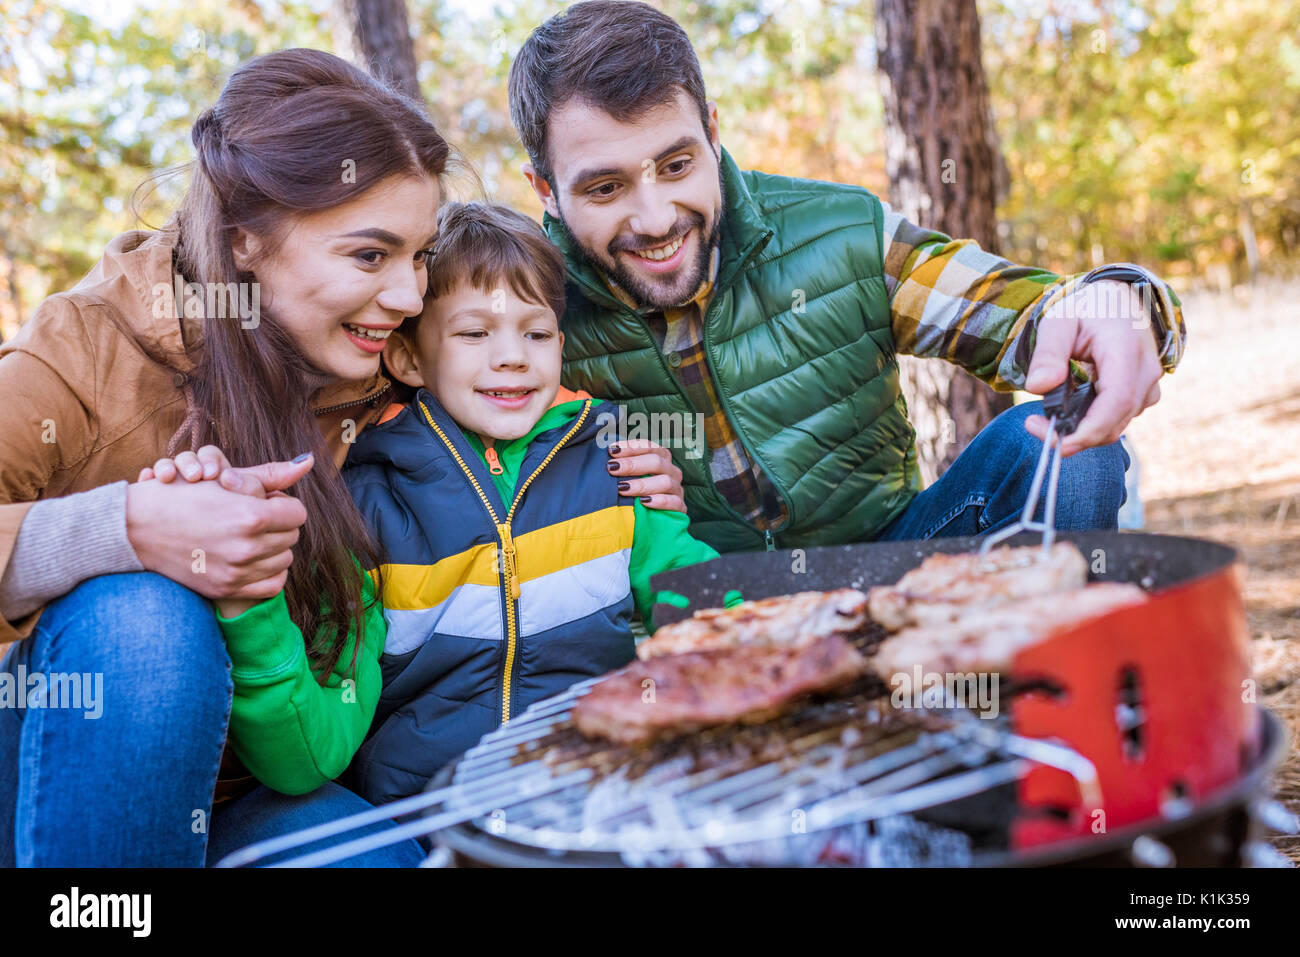 Close-up portrait of happy family grilling meat on barbecue grill in autumn park - Stock Image